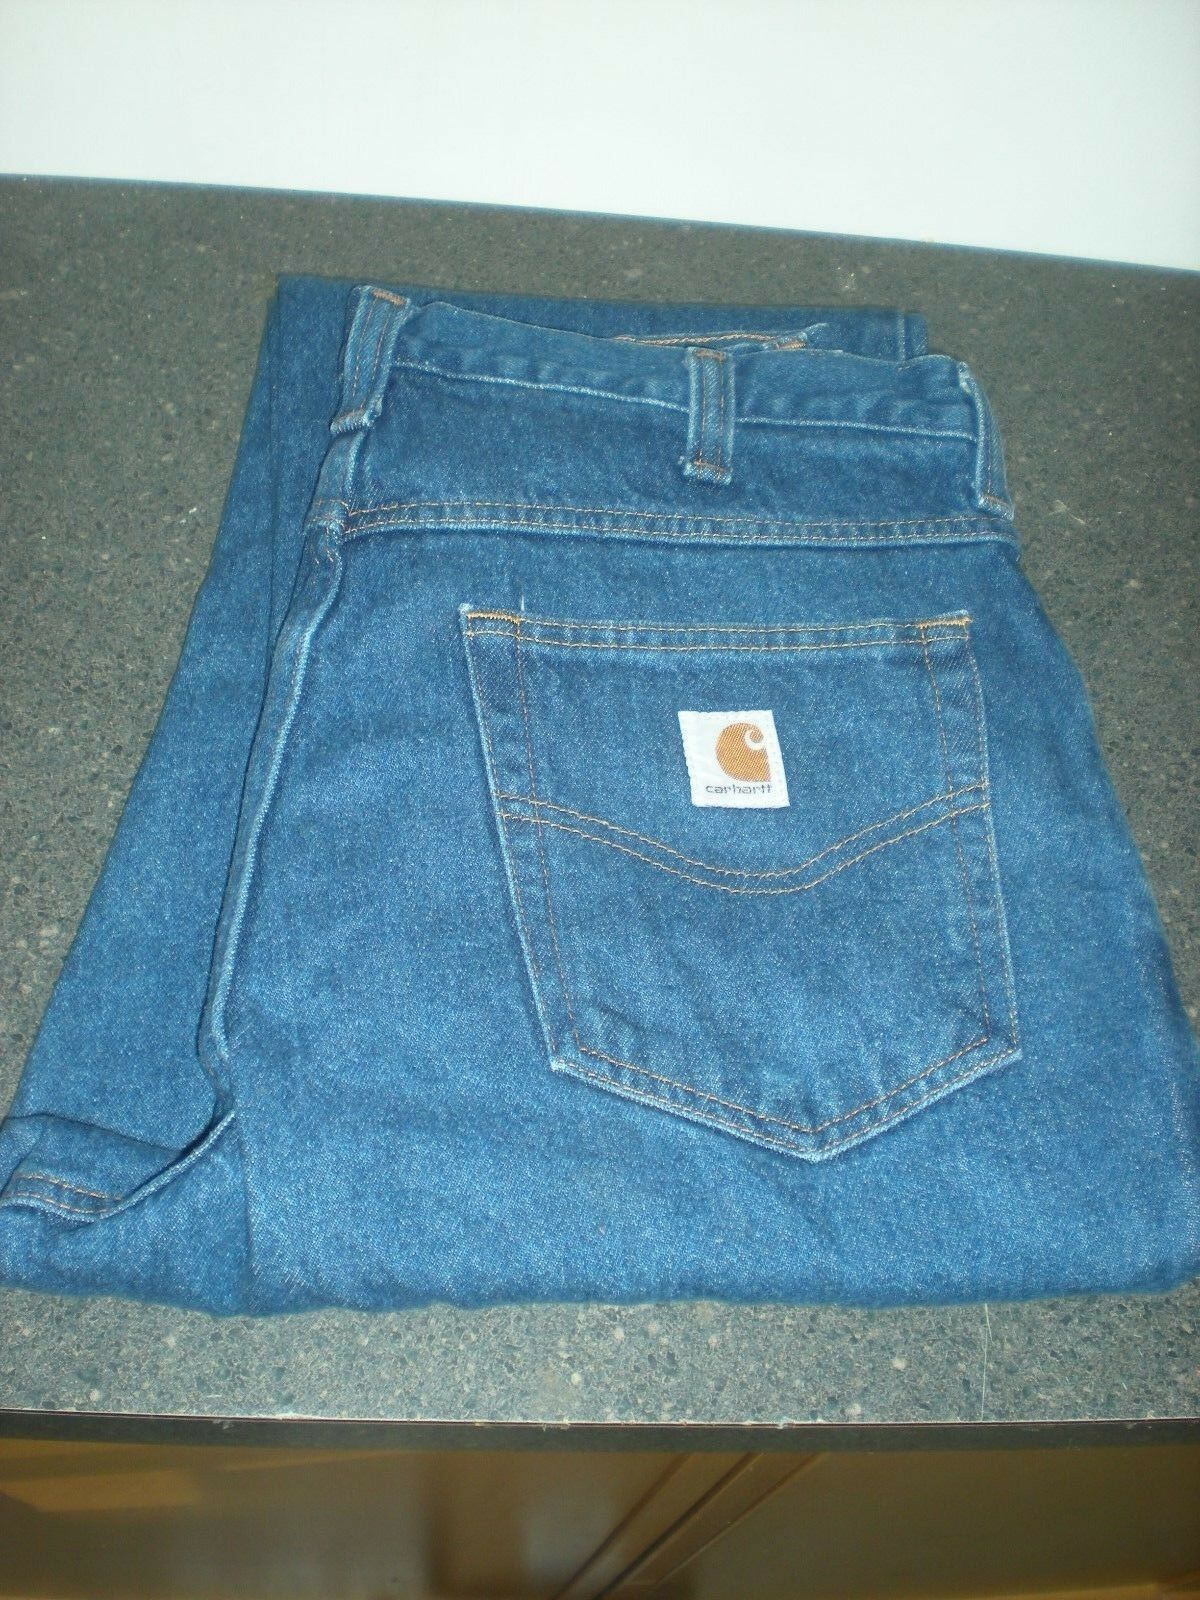 2 Carhartt Denim Relaxed Fit Work Jeans 381-83 Size 36